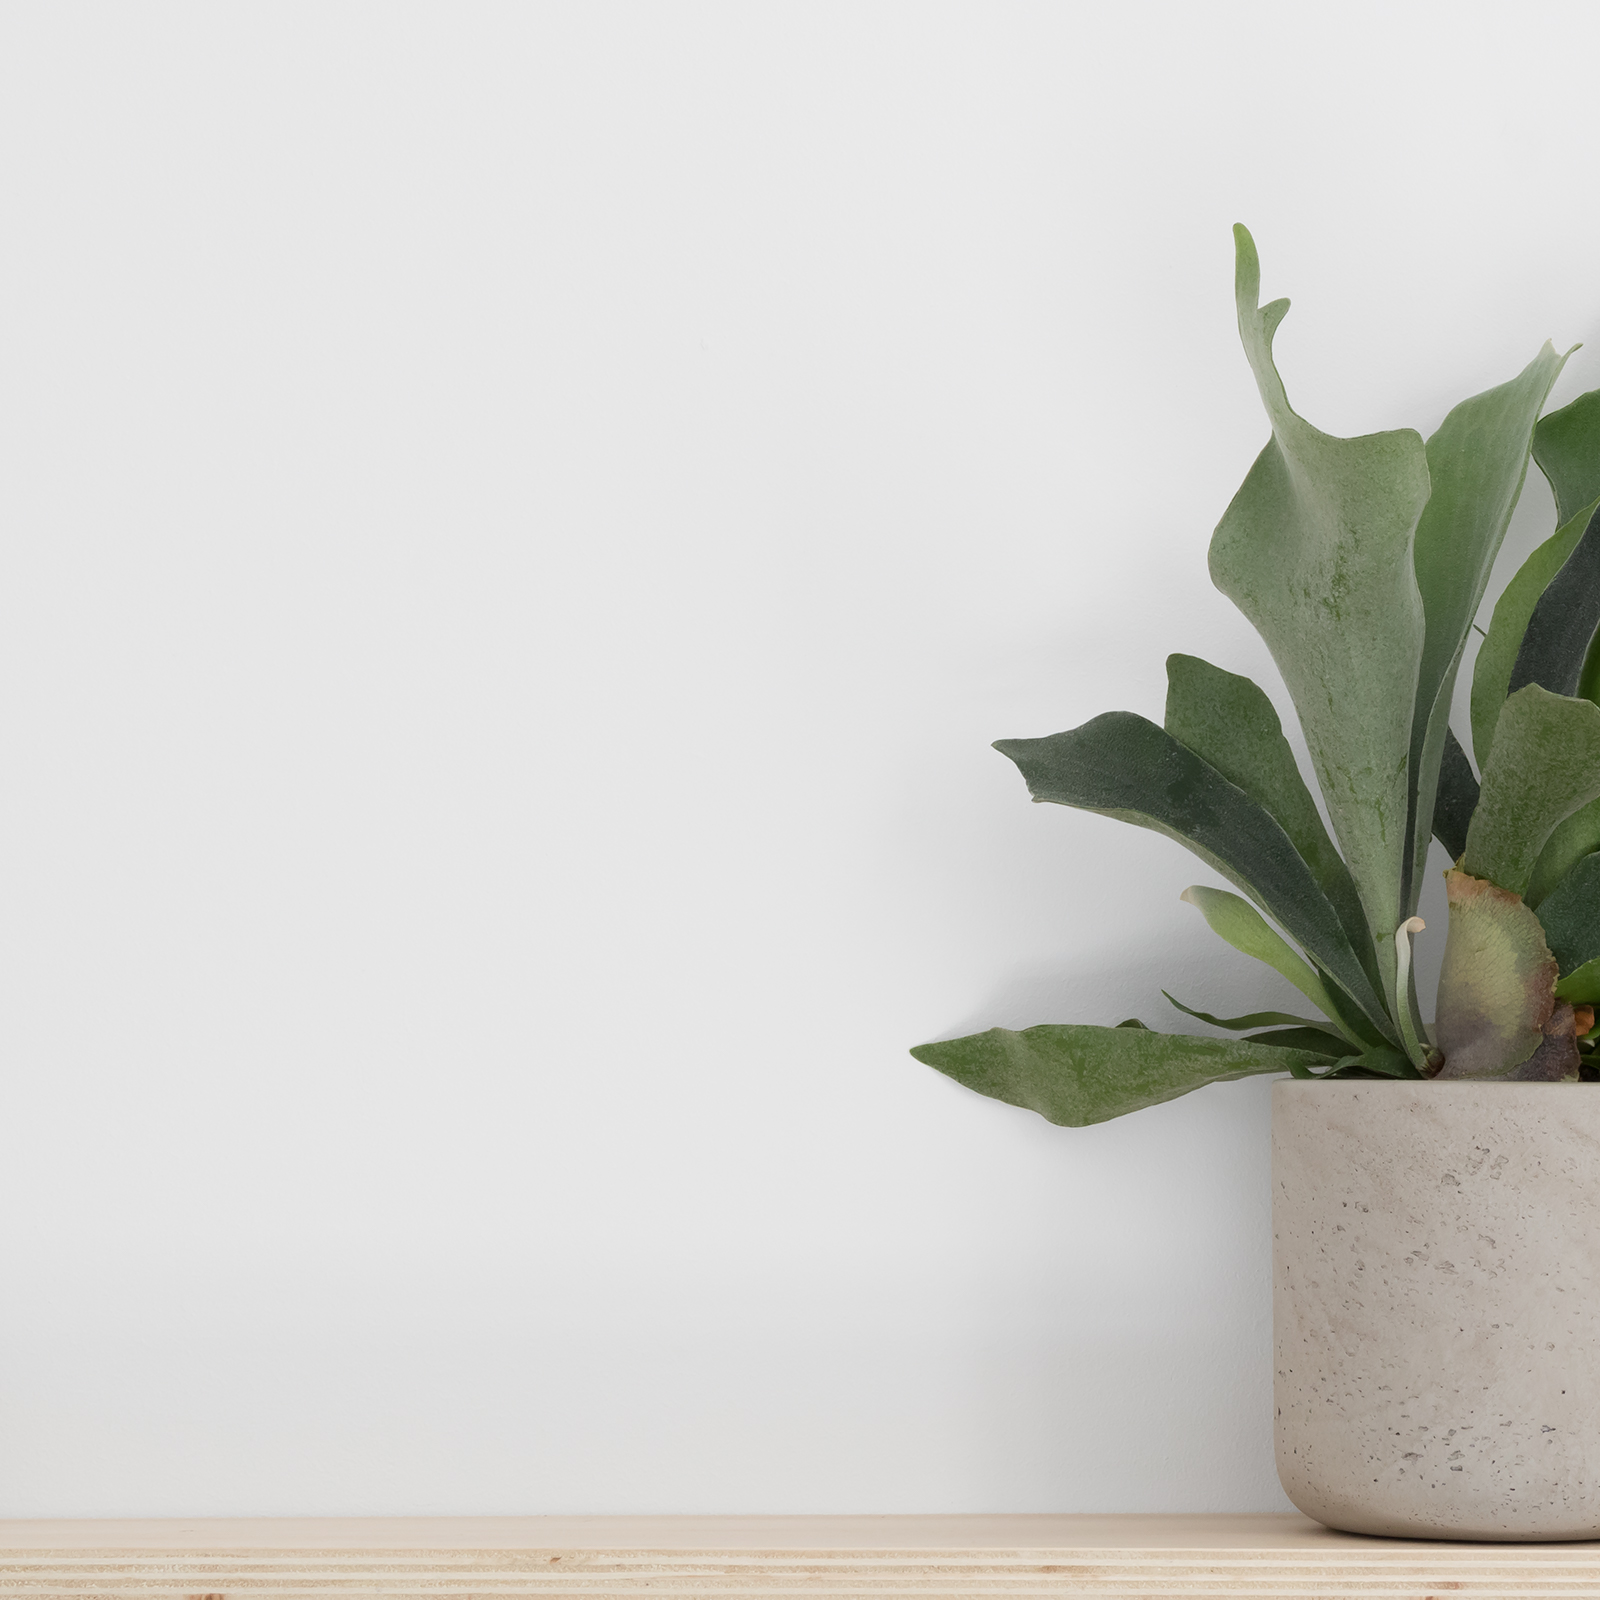 Staghorn fern in concrete planter, plywood shelf, white wall